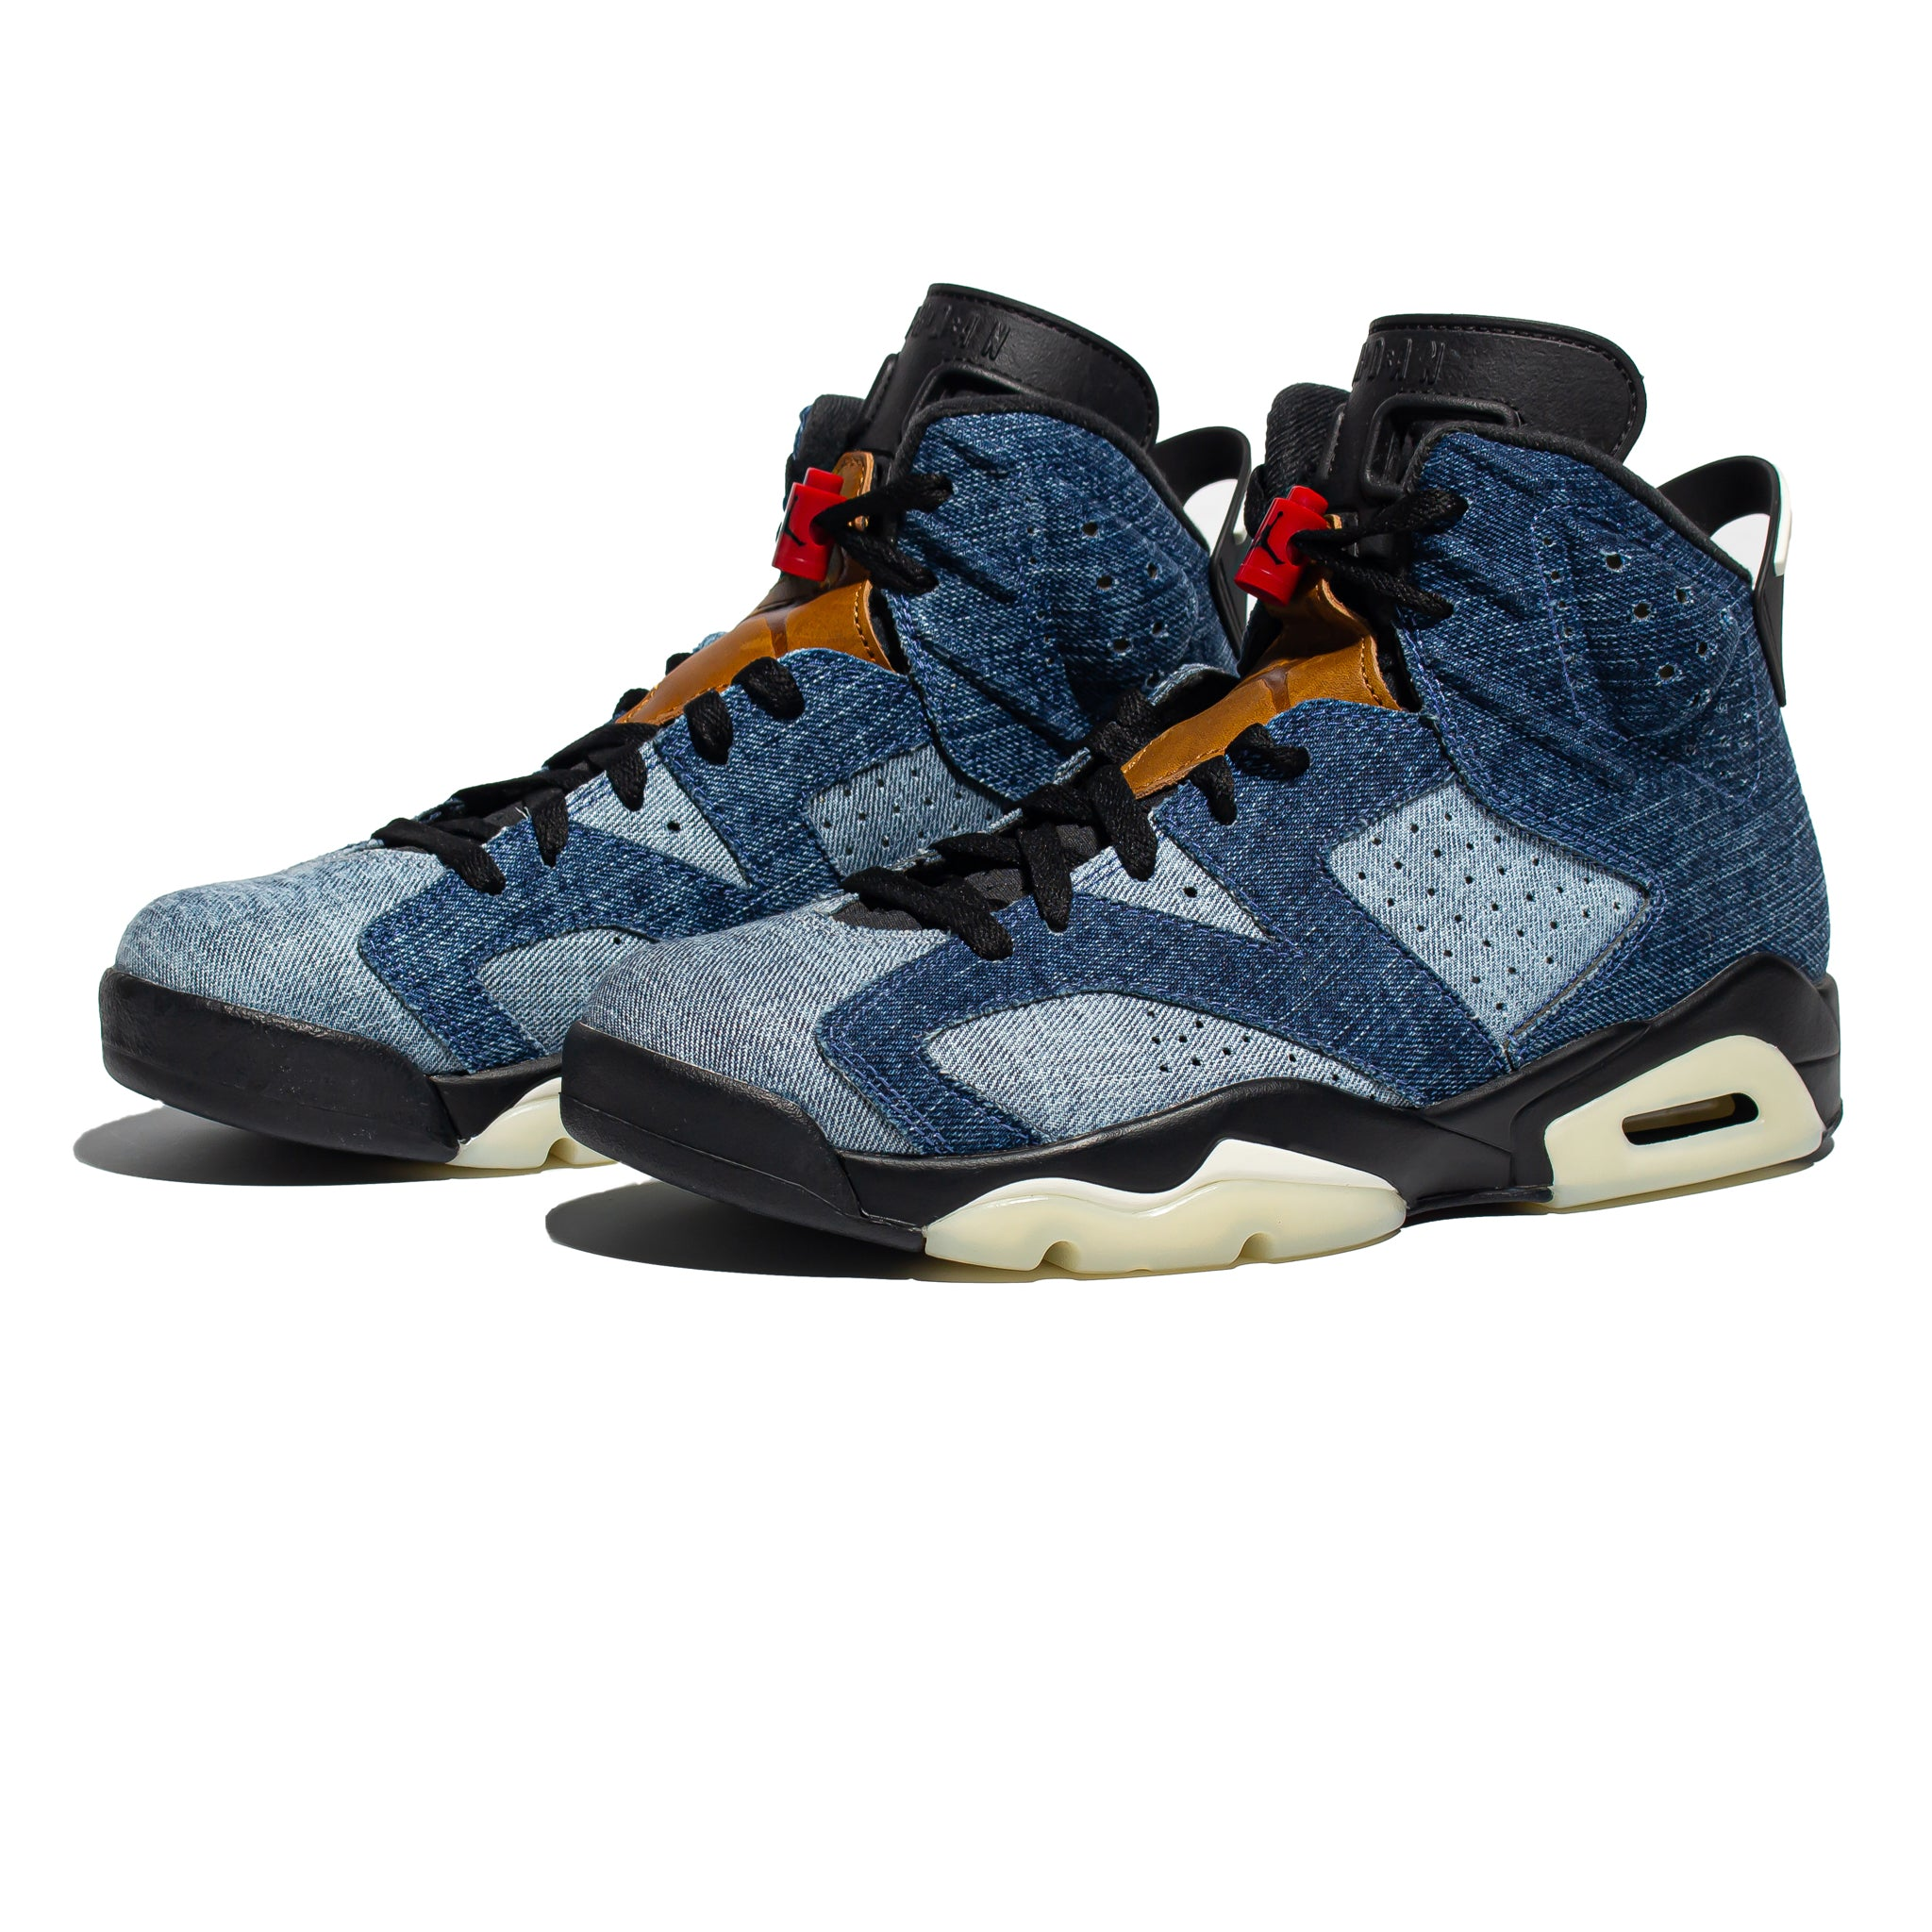 Air Jordan 6 Retro (GS) 'Washed Denim'